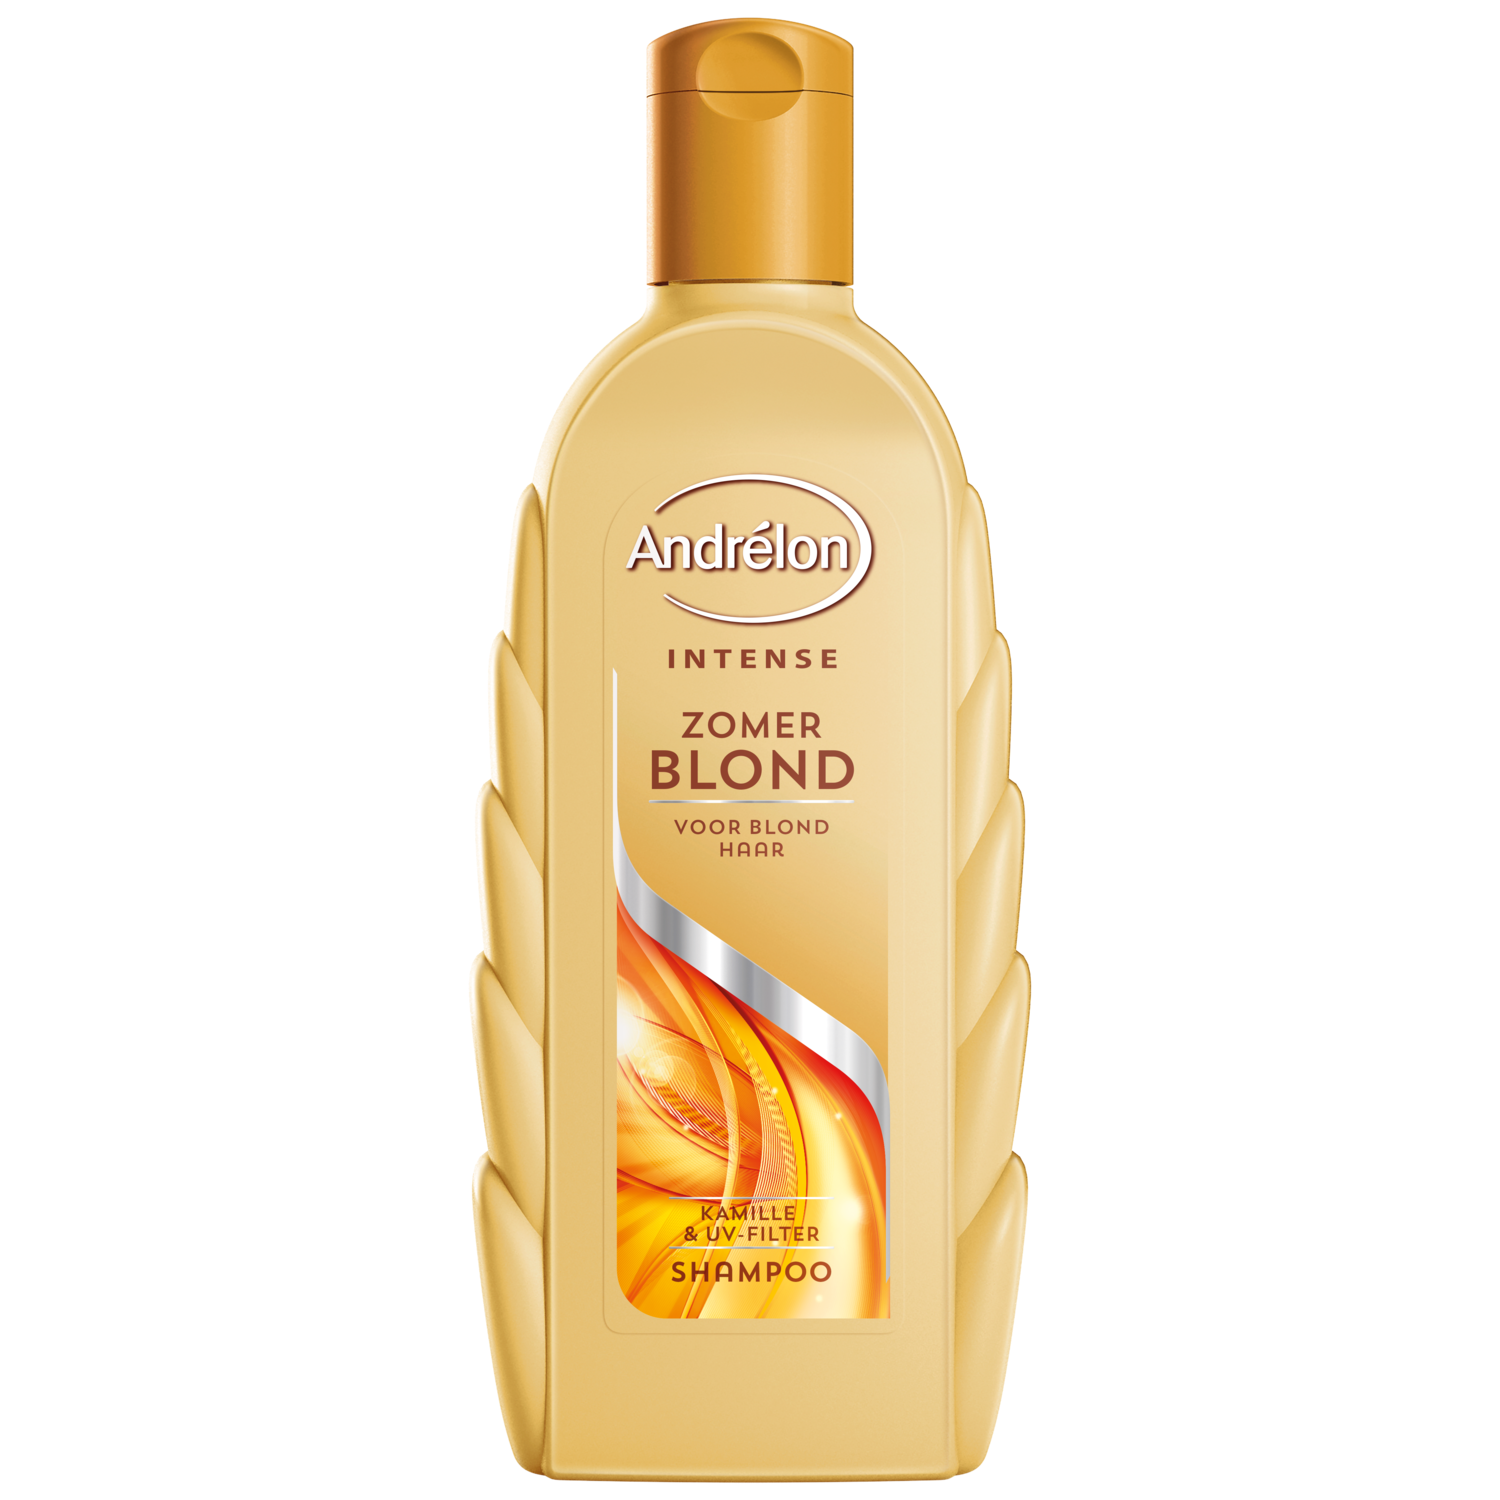 Andrelon Intense Zomer Blond SH 300ml 8710447321812